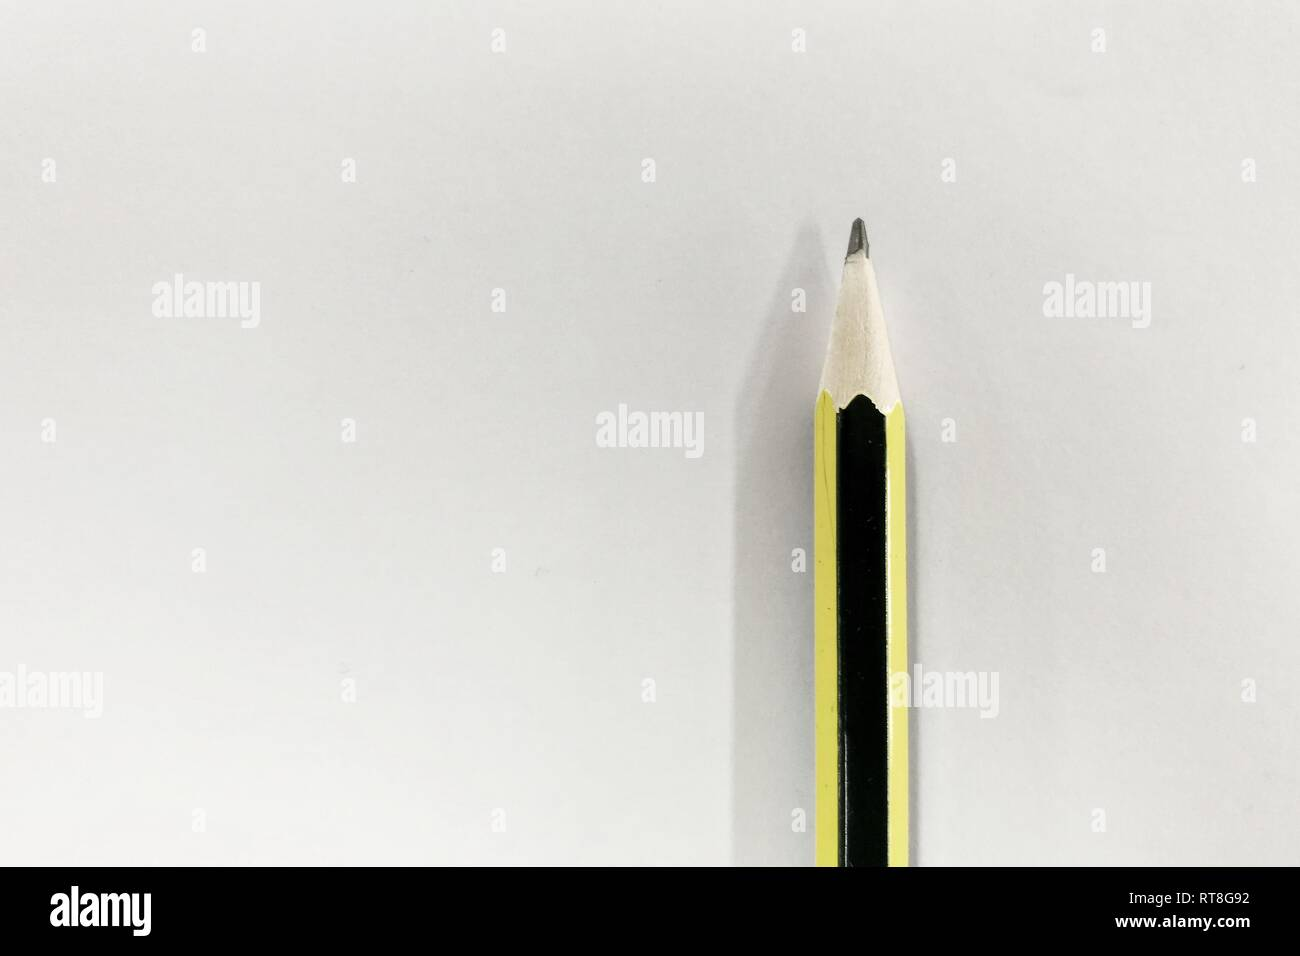 pencil on plain white paper. background for idea formulation and writing concepts. - Stock Image